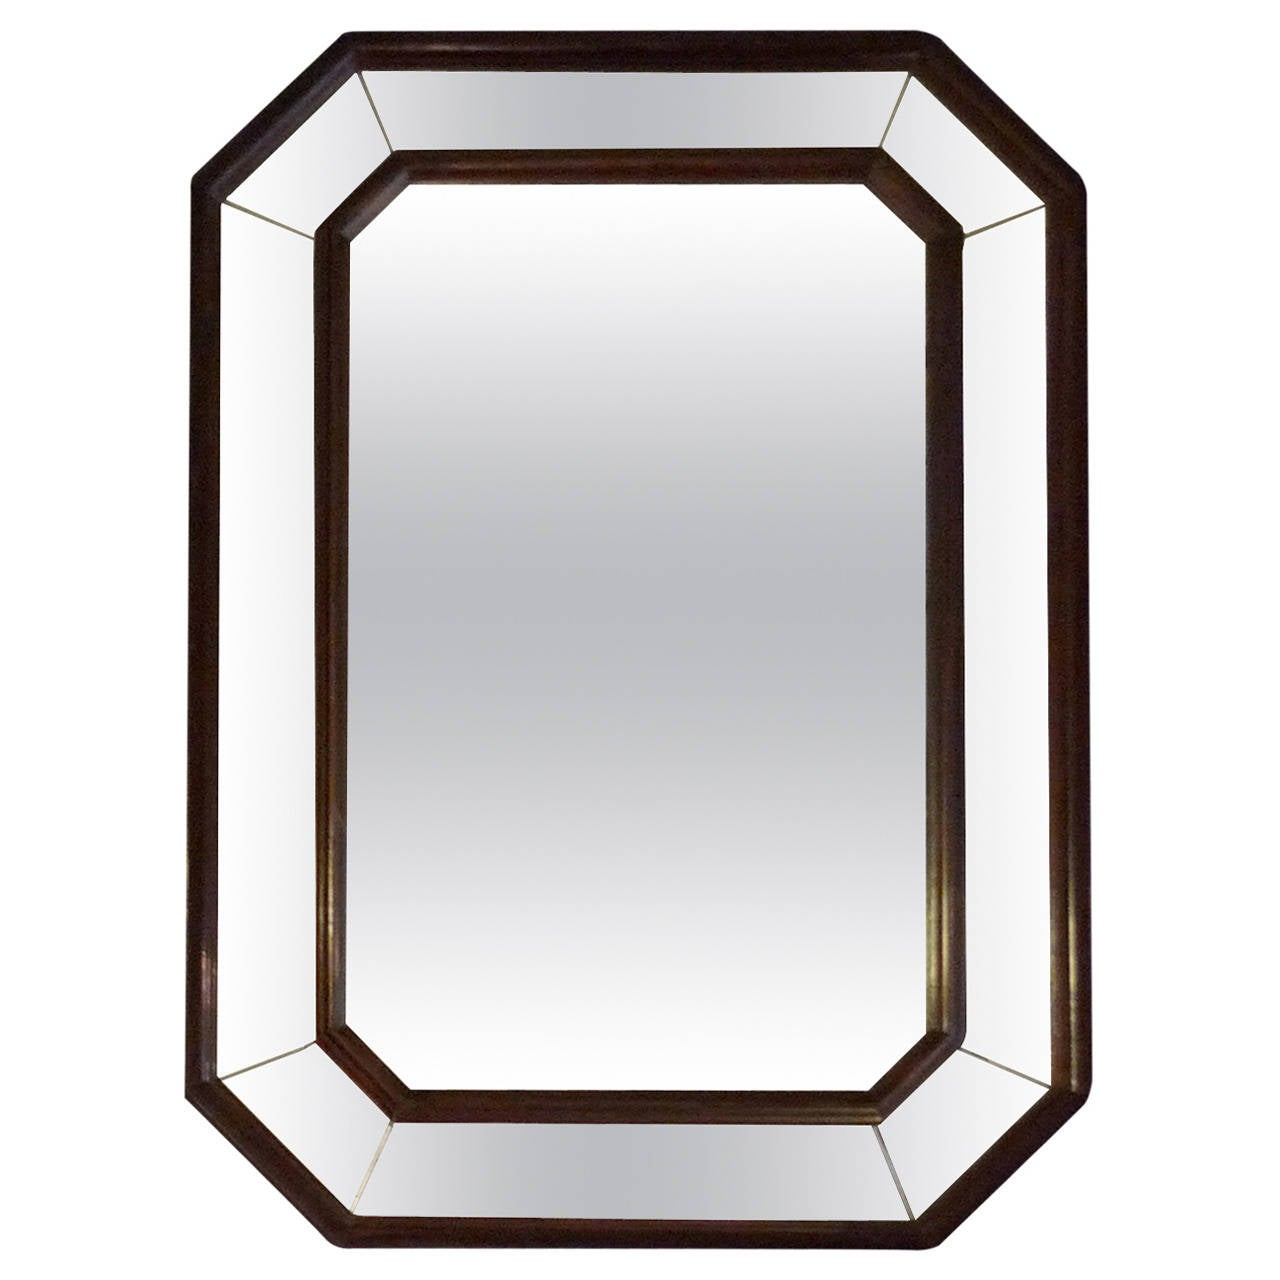 French art deco wood frame mirror with original glass at for Mirror with mirror border